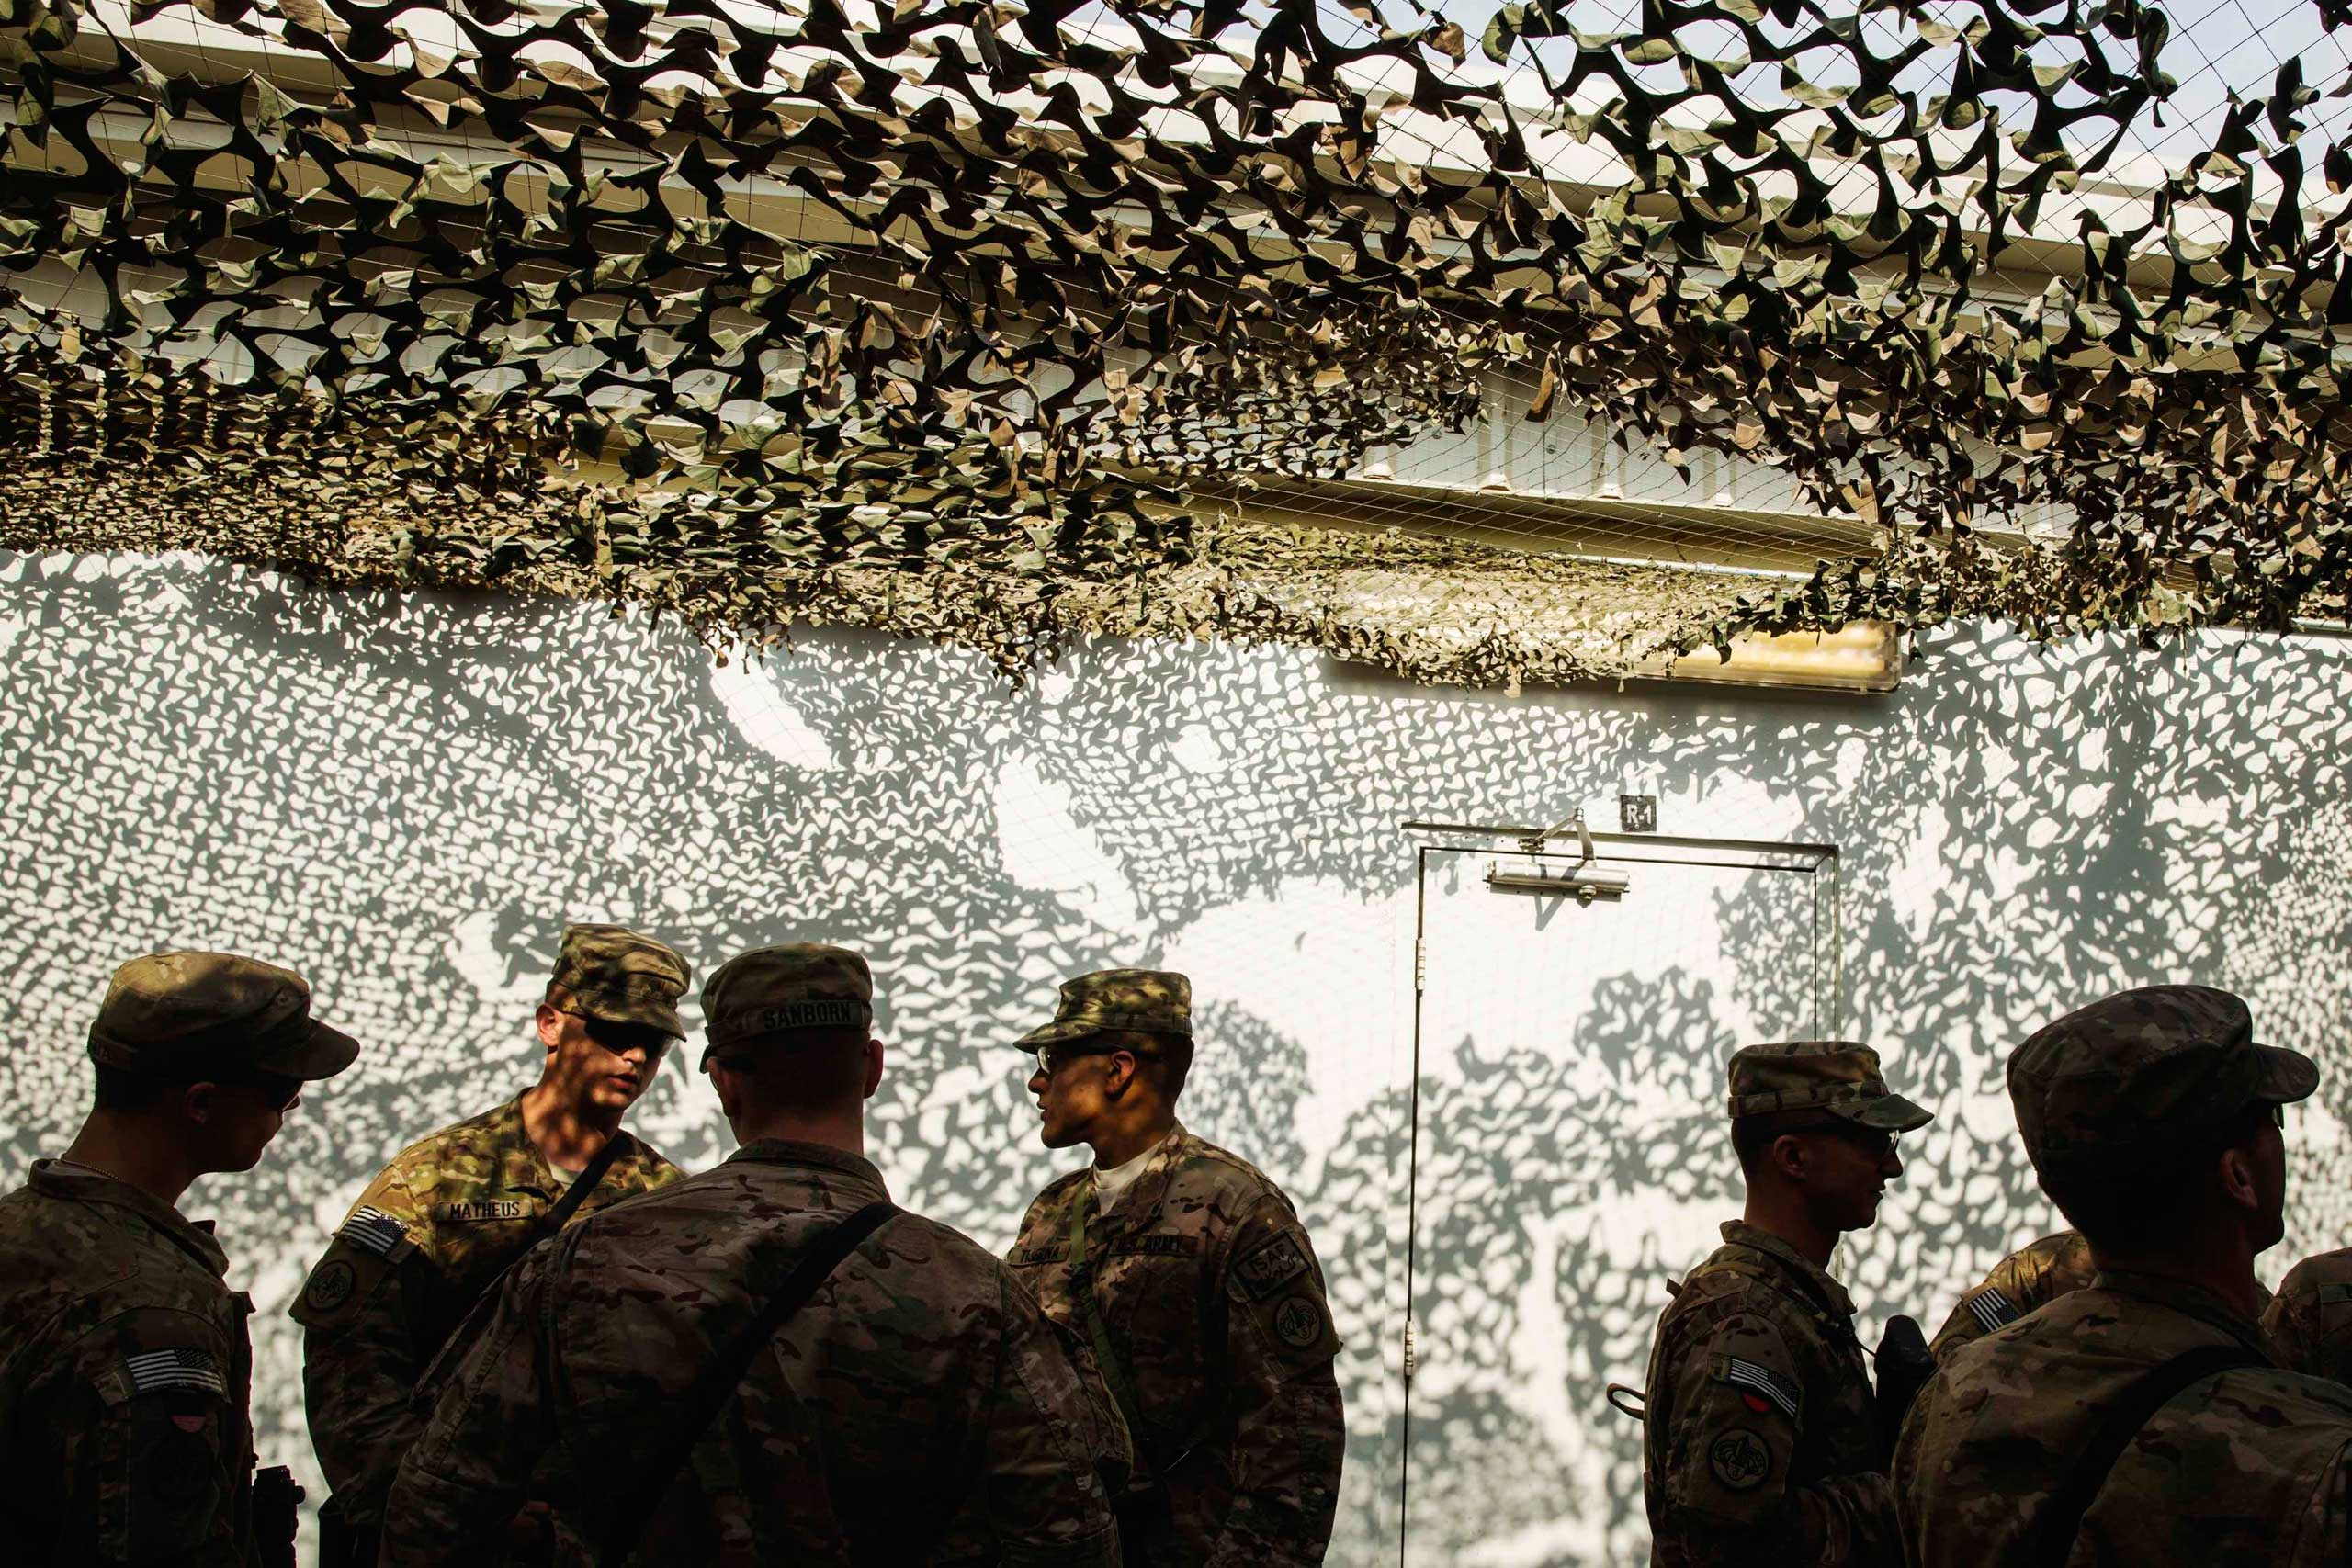 U.S. soldiers from the 3rd Cavalry Regiment wait in line to get food during a Christmas day lunch at forward operating base Gamberi in the Laghman province of Afghanistan on Dec. 25, 2014.